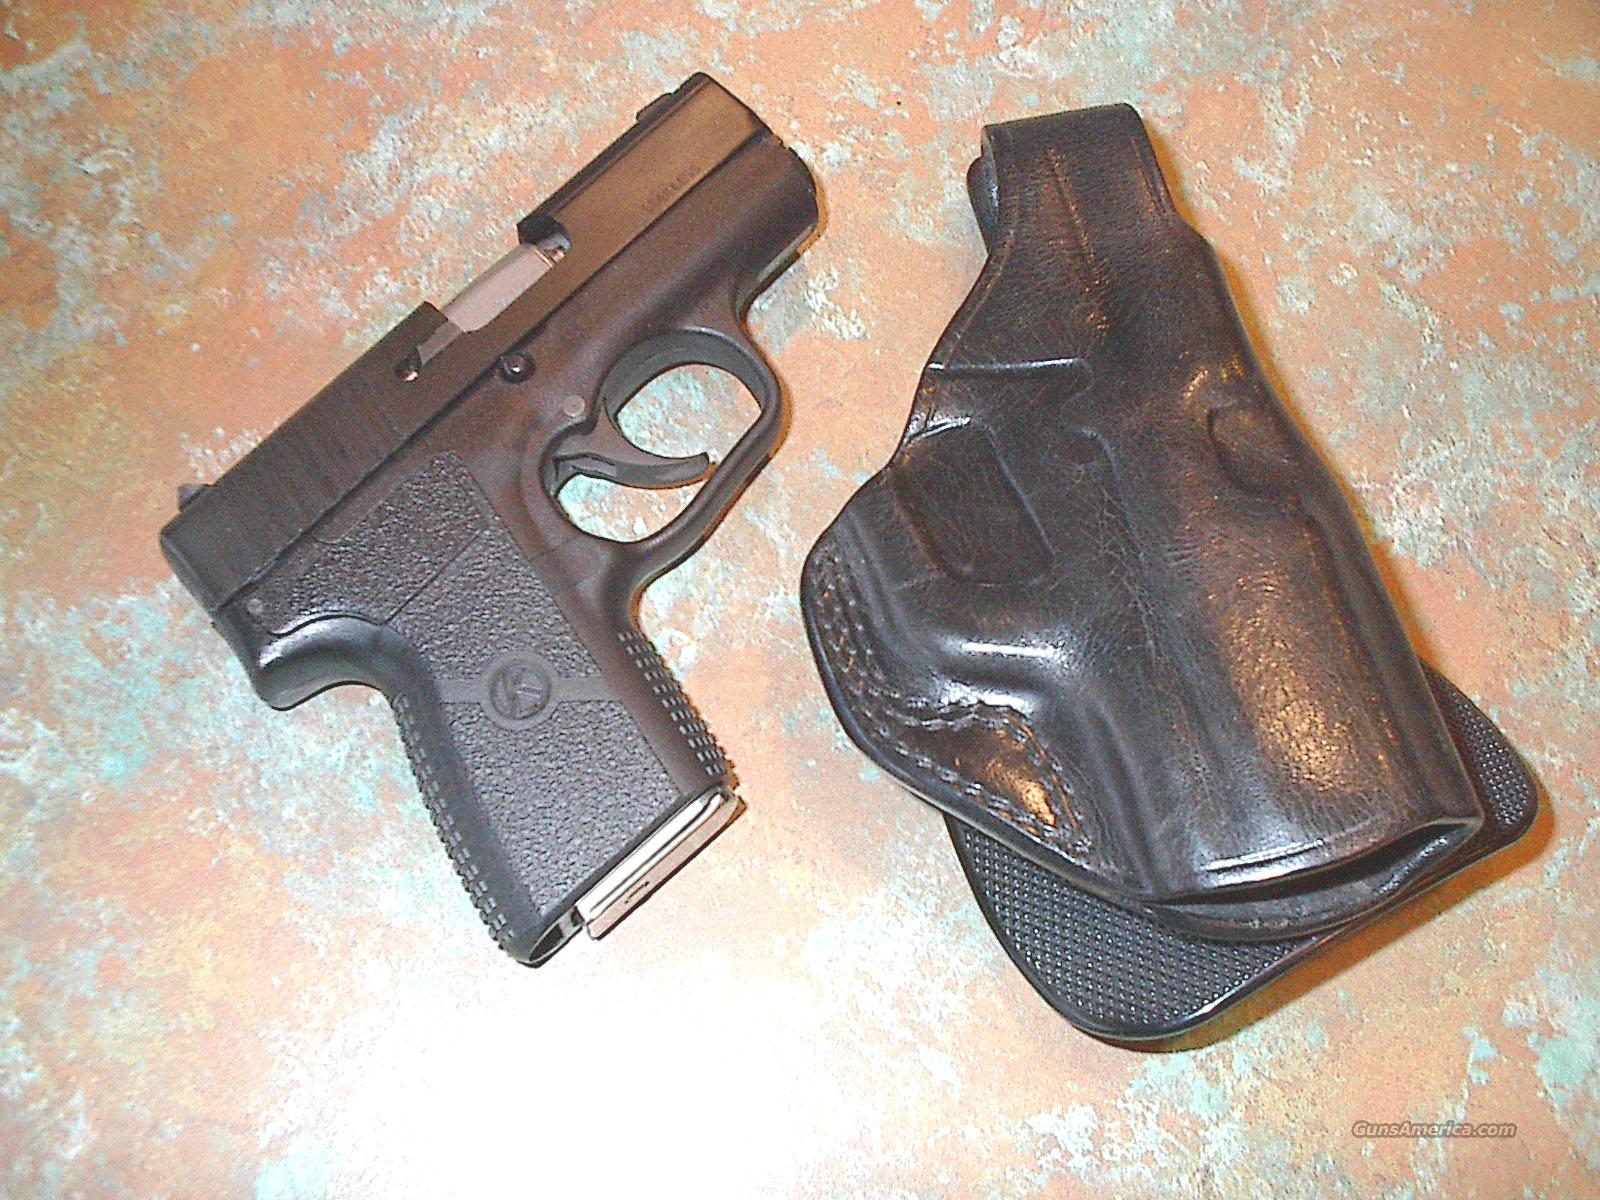 KAHR PM9 BLACK DIAMOND MINI PISTOL  Guns > Pistols > Kahr Pistols